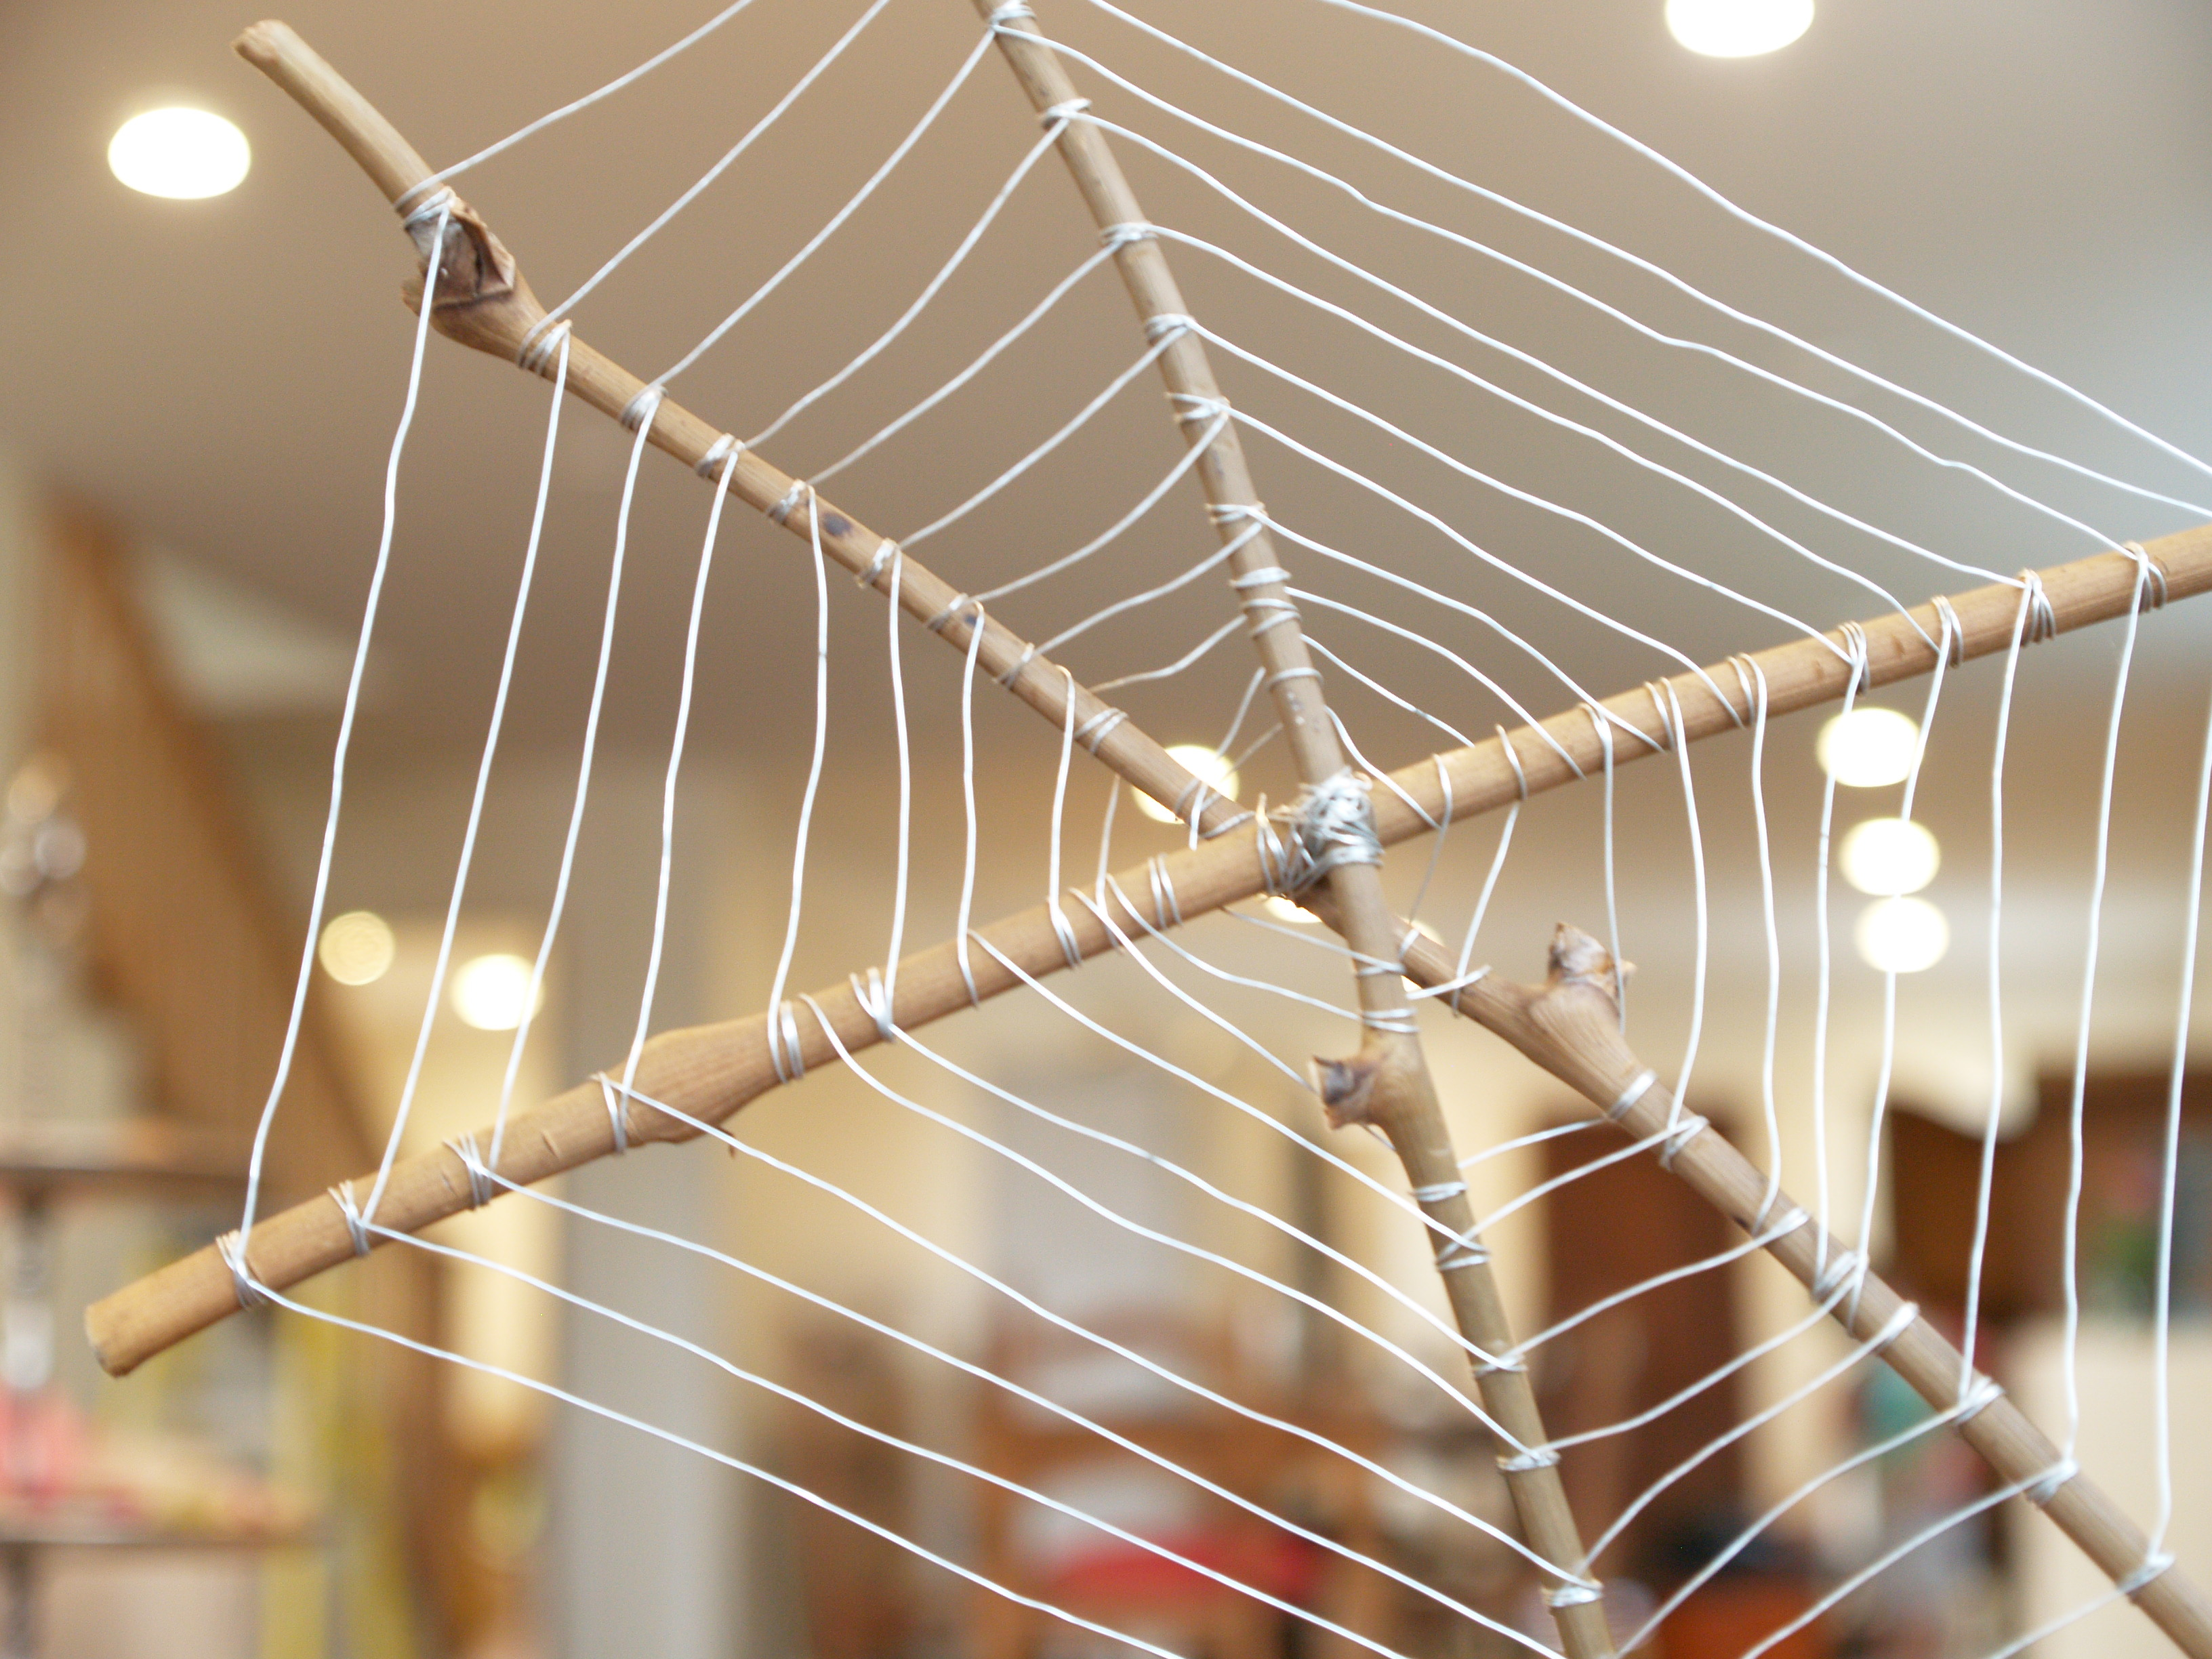 Let's Make a Wire Spiderweb for Halloween